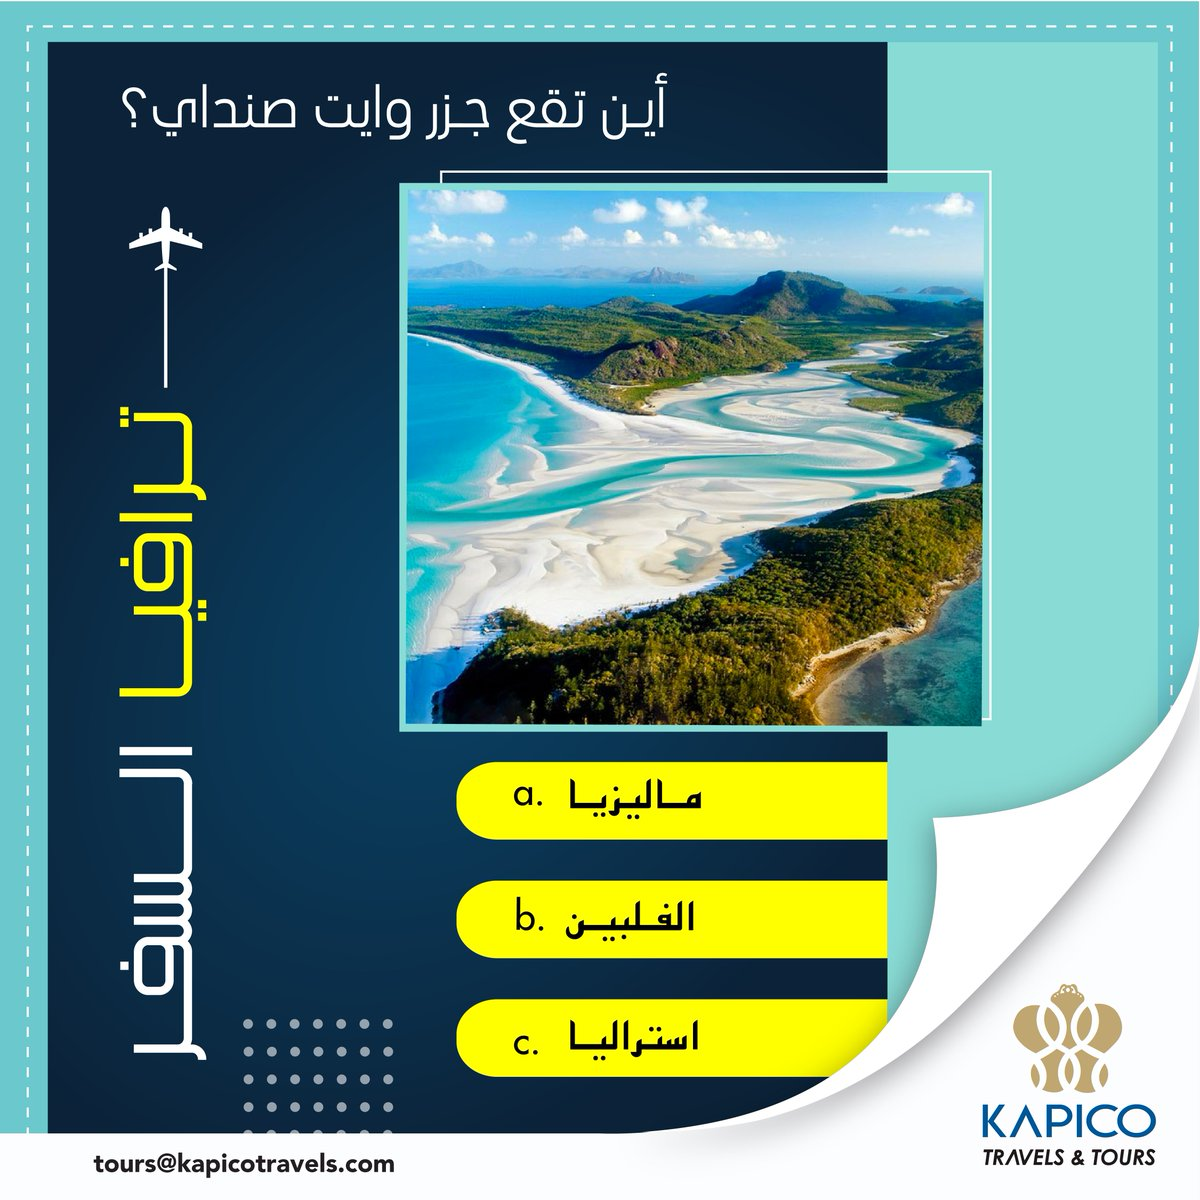 أين تقع جزر وايت صنداي ؟ ماليزيا  الفلبين  استراليا  Where are the Whitsunday Islands located? a. Malaysia b. Philipines c. Austrila  #kapico #kapicotravels #traveltrivia #travelquizs #quiz #travelquestions #travelers #kuwait #whitsundayislands #malaysia #philipines #austrila https://t.co/FhP57NljZL